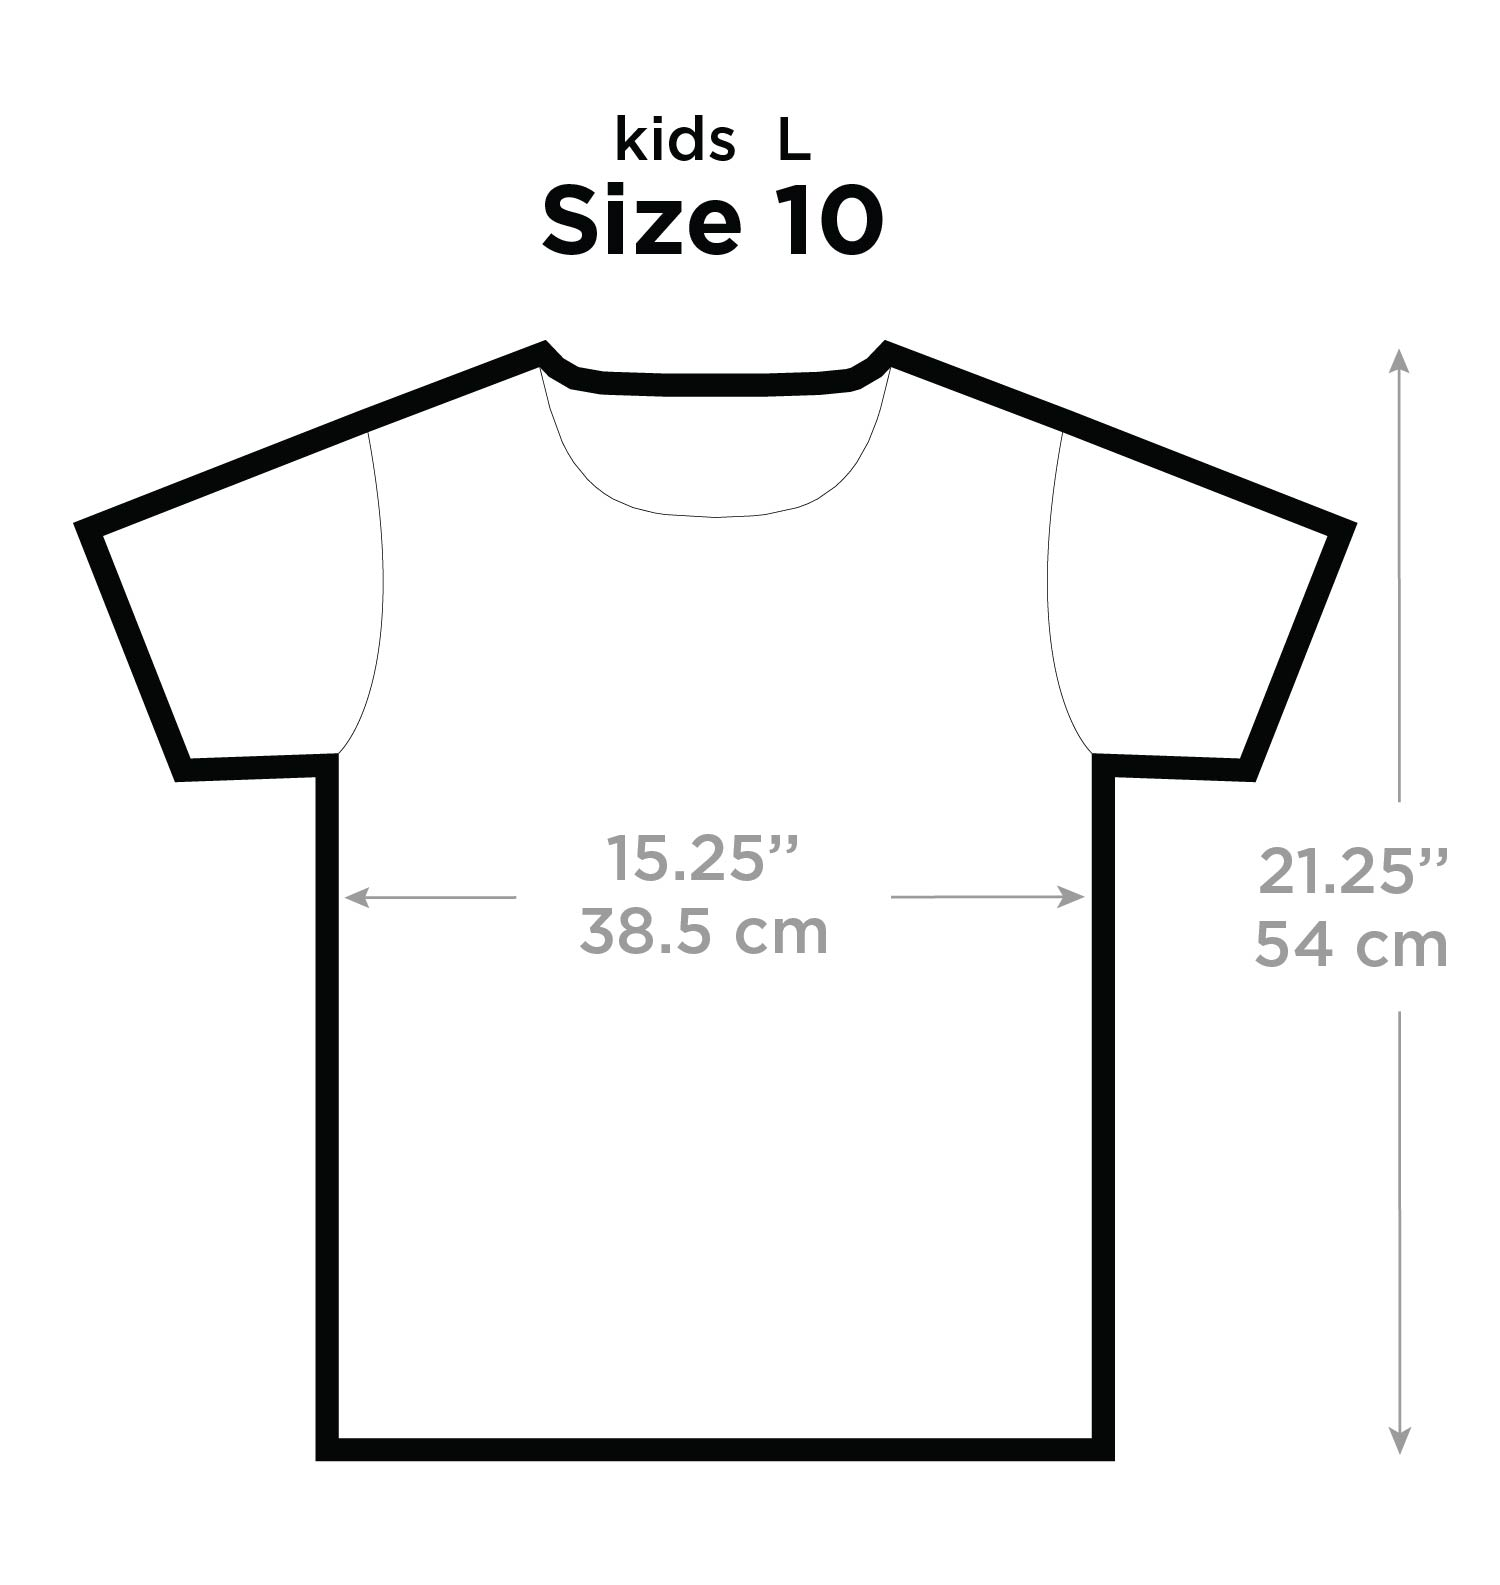 Measure a shirt collar that fits you well. Lay collar flat. Measure from center of collar button to far end of opposite buttonhole.